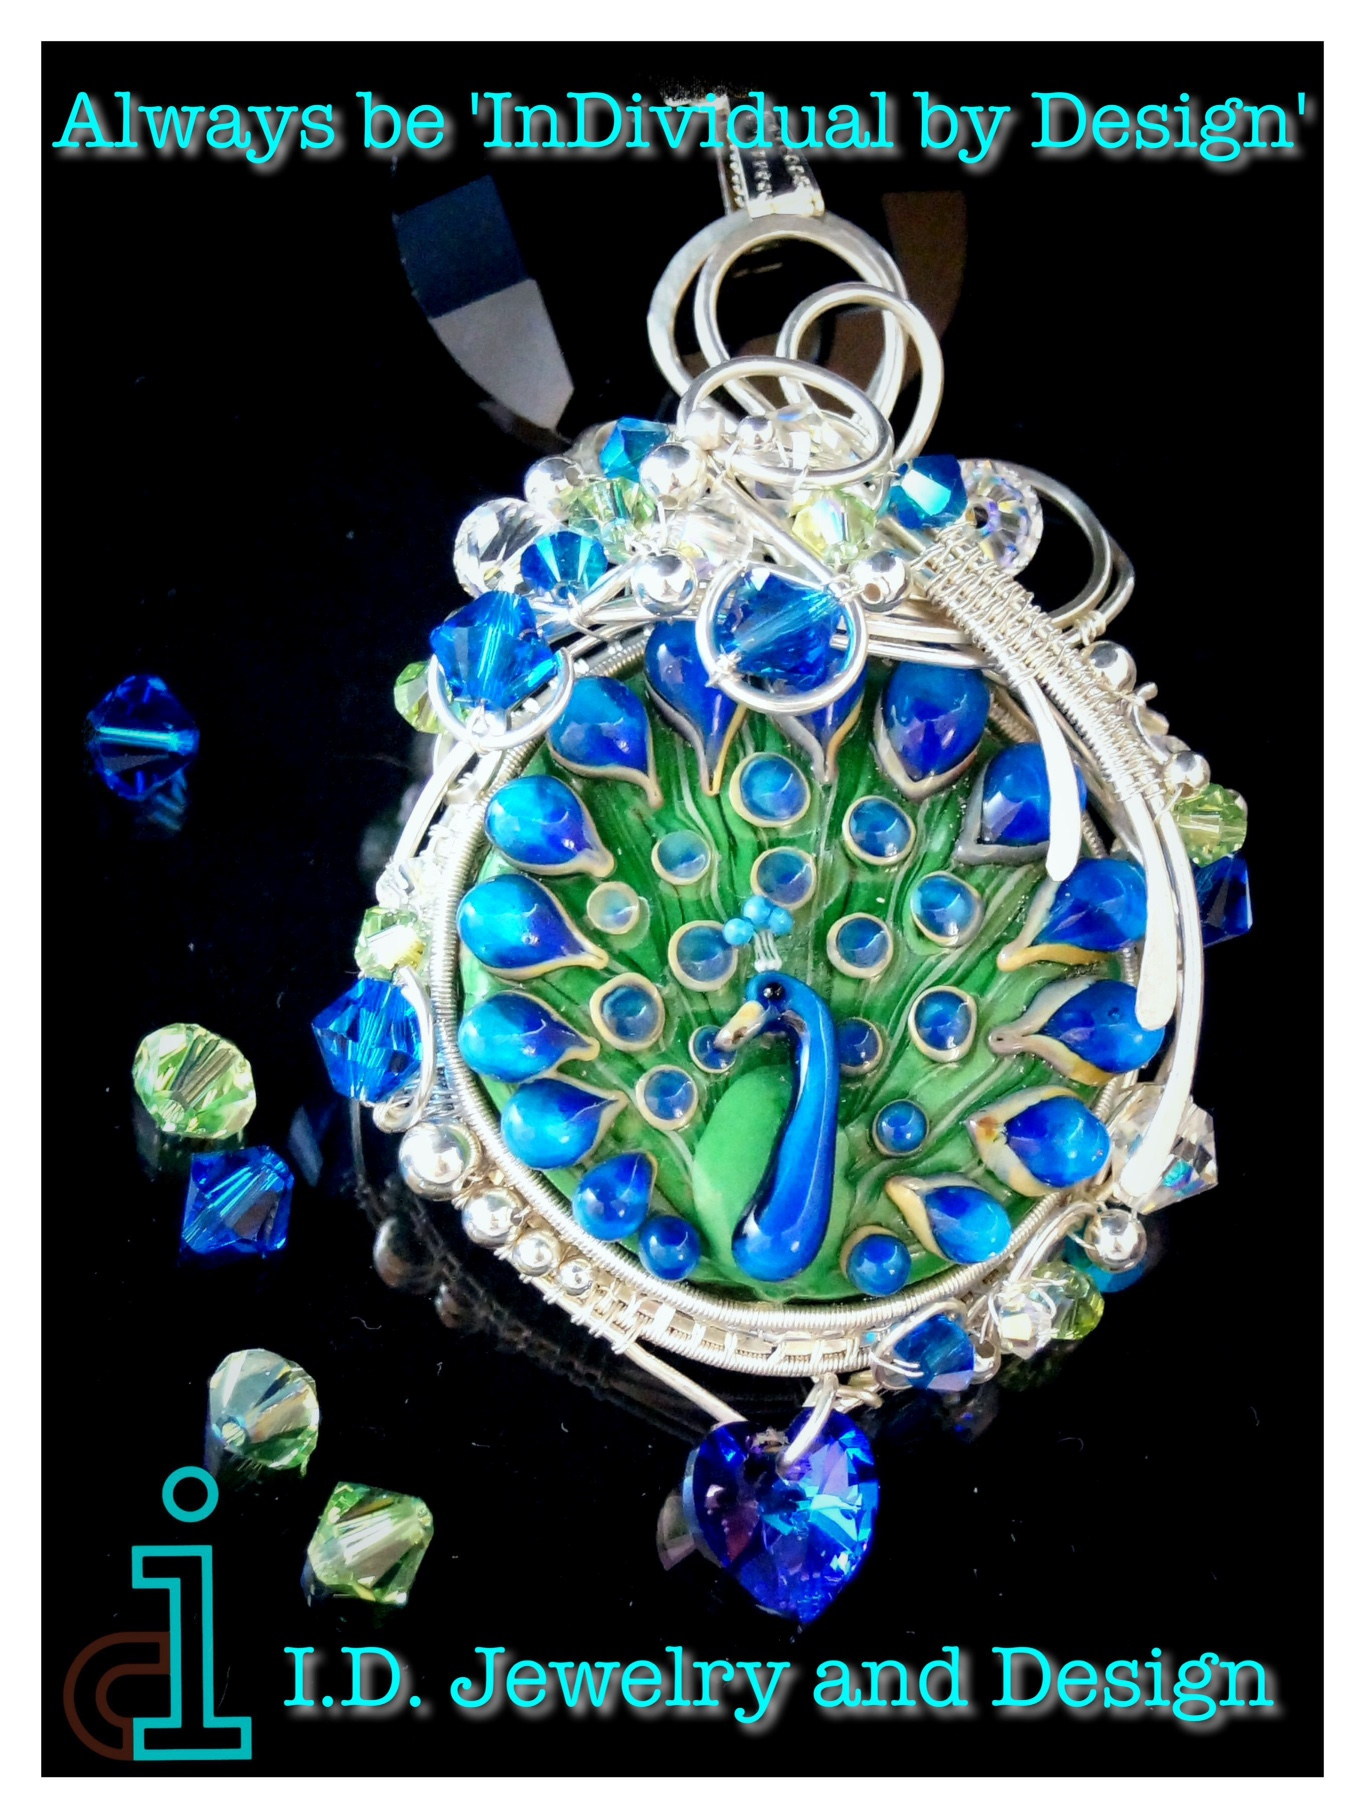 I.D. Jewelry and Design  product7.JPG